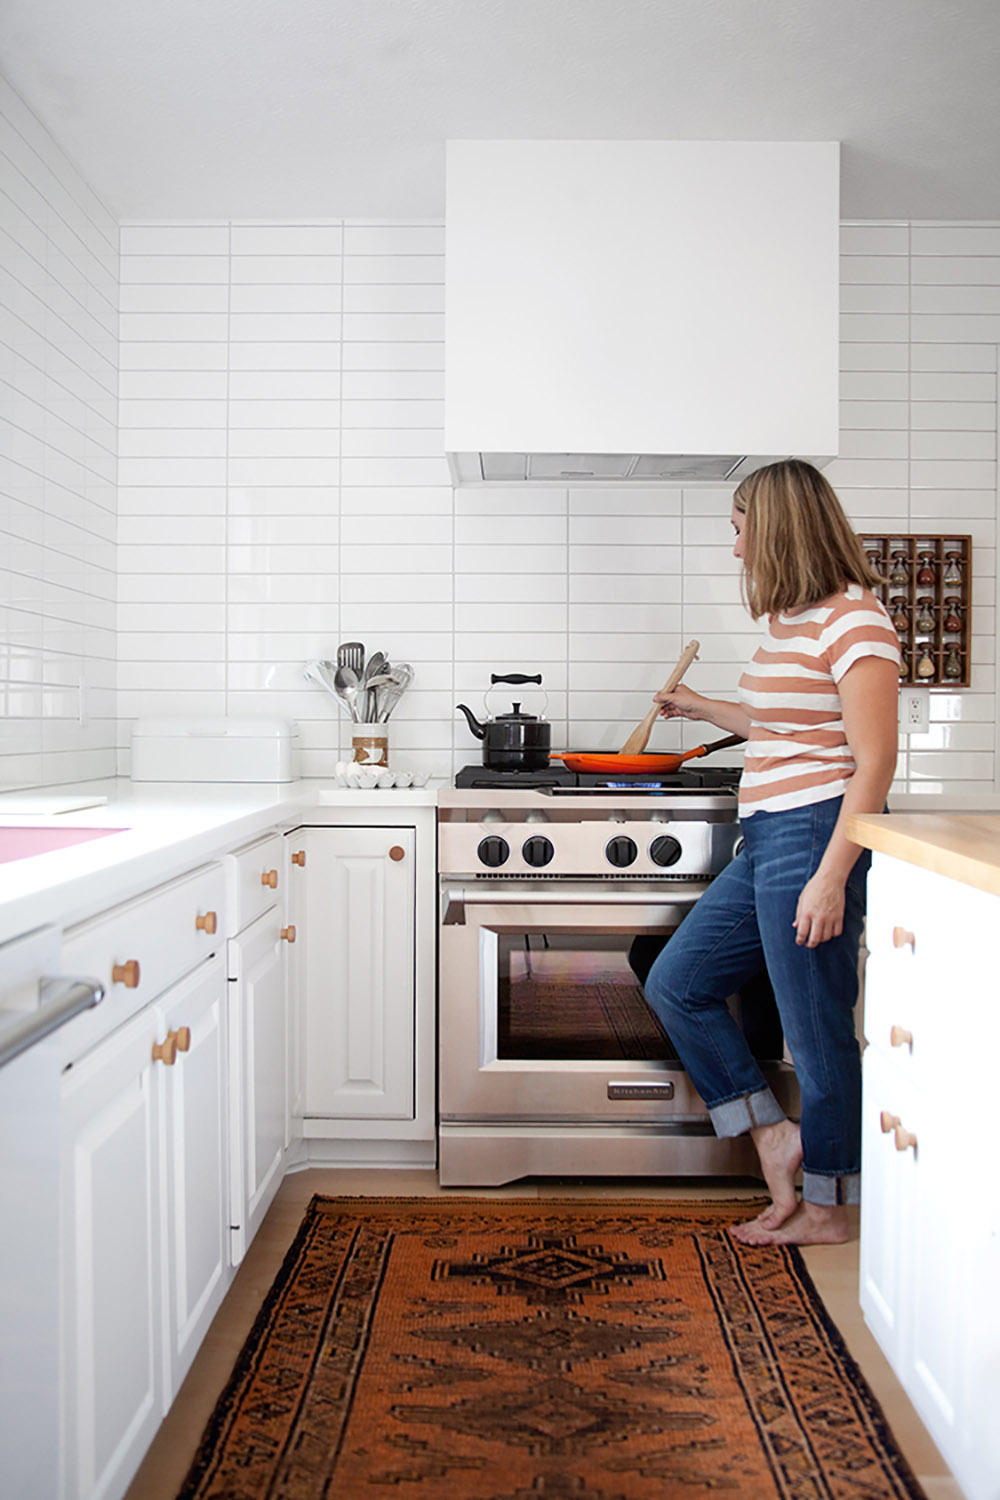 A woman cooking on a gas range.